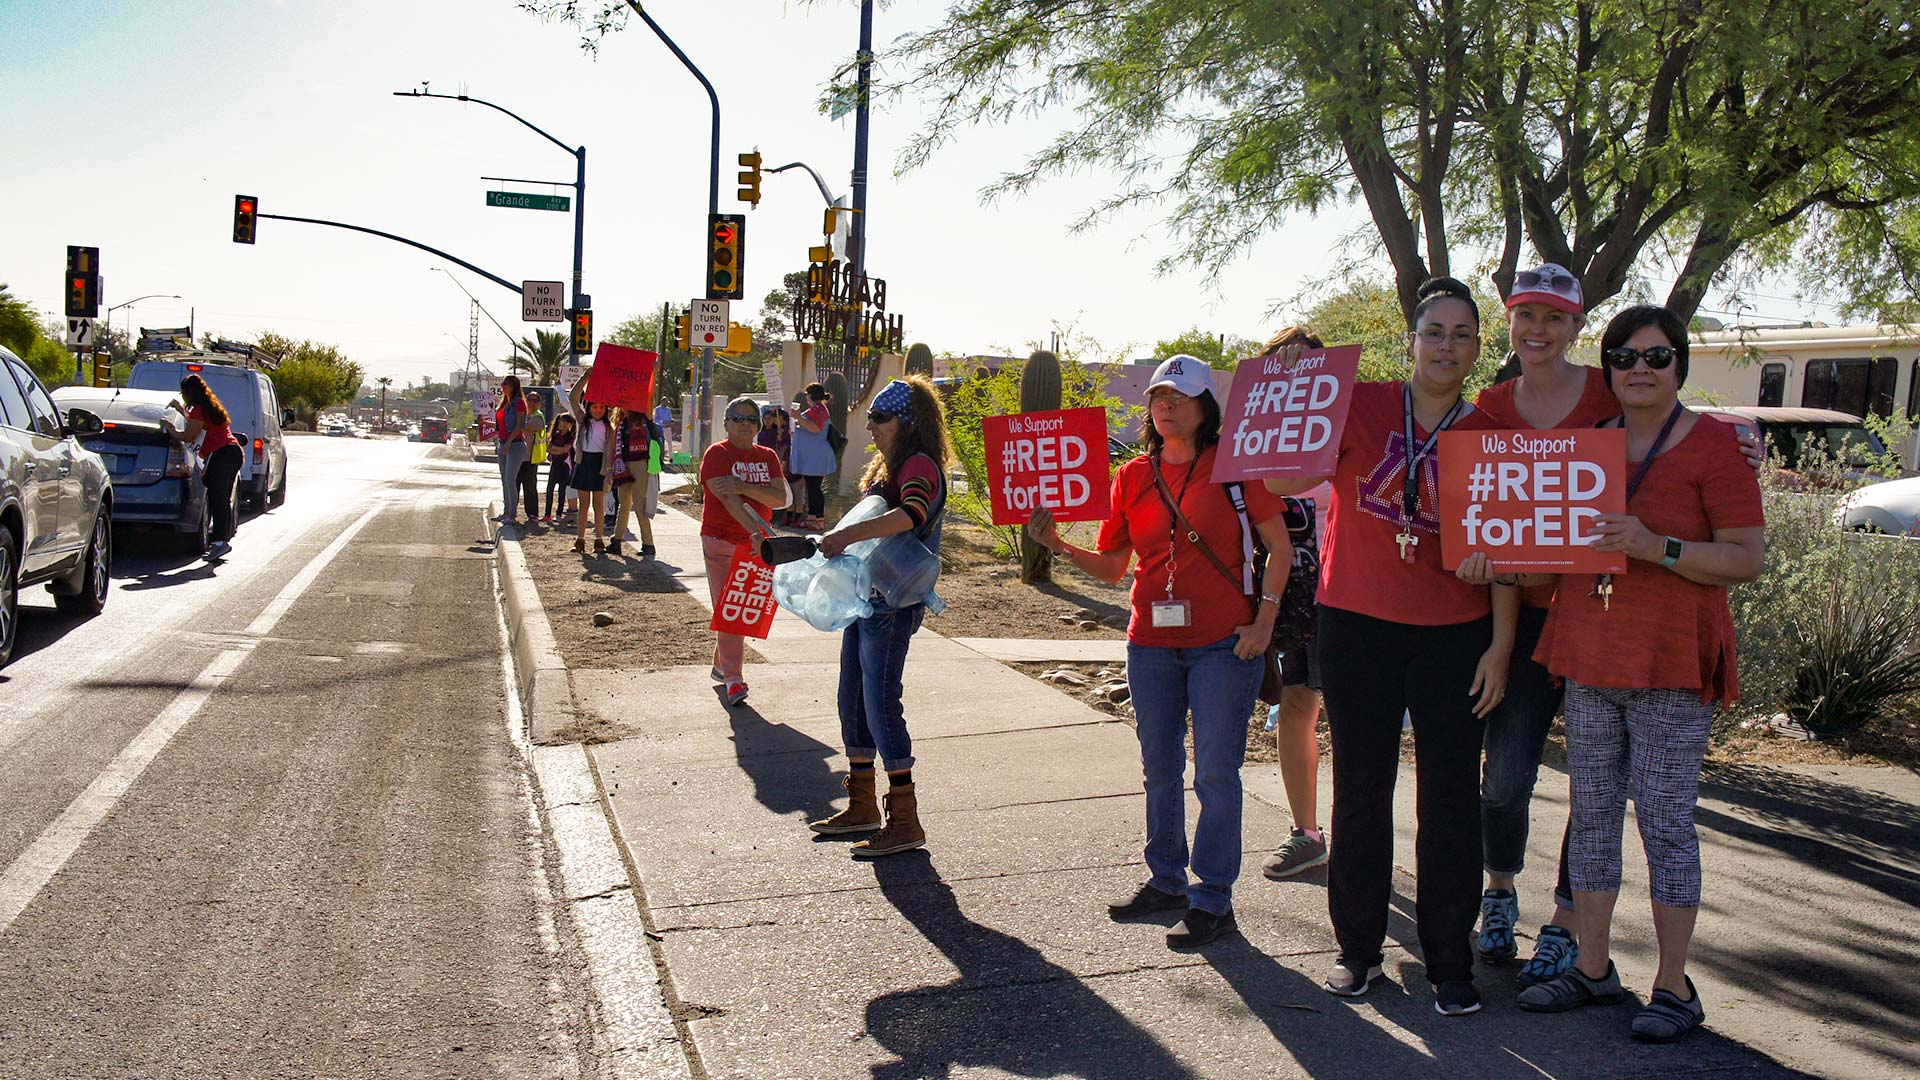 Educators protest before school on Tuesday, April 24, with #RedForEd signs in Tucson's Barrio Hollywood.